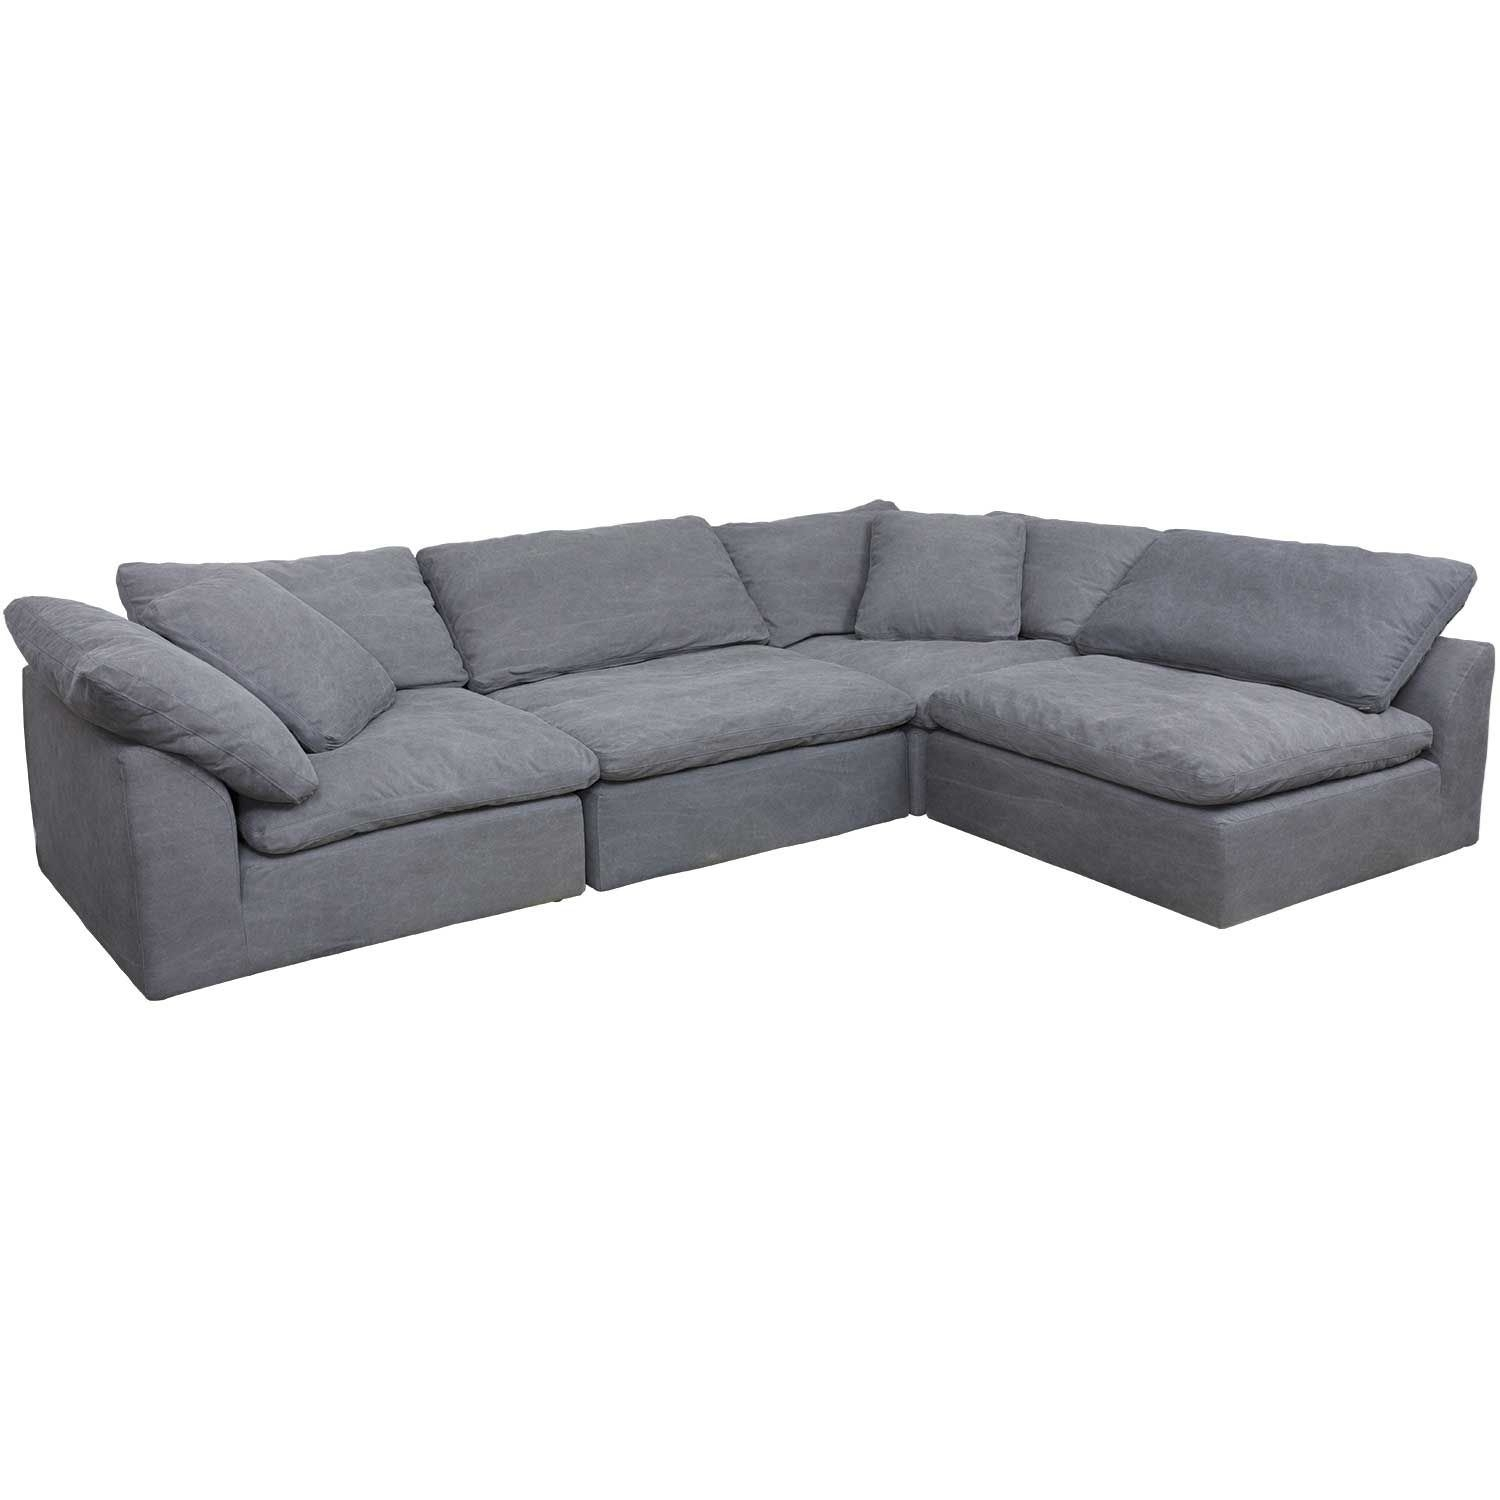 Vaughn Gray 4 Piece Sectional | 1458 51X2 37X2 | Synergy Home With Regard To Aurora 2 Piece Sectionals (View 22 of 25)